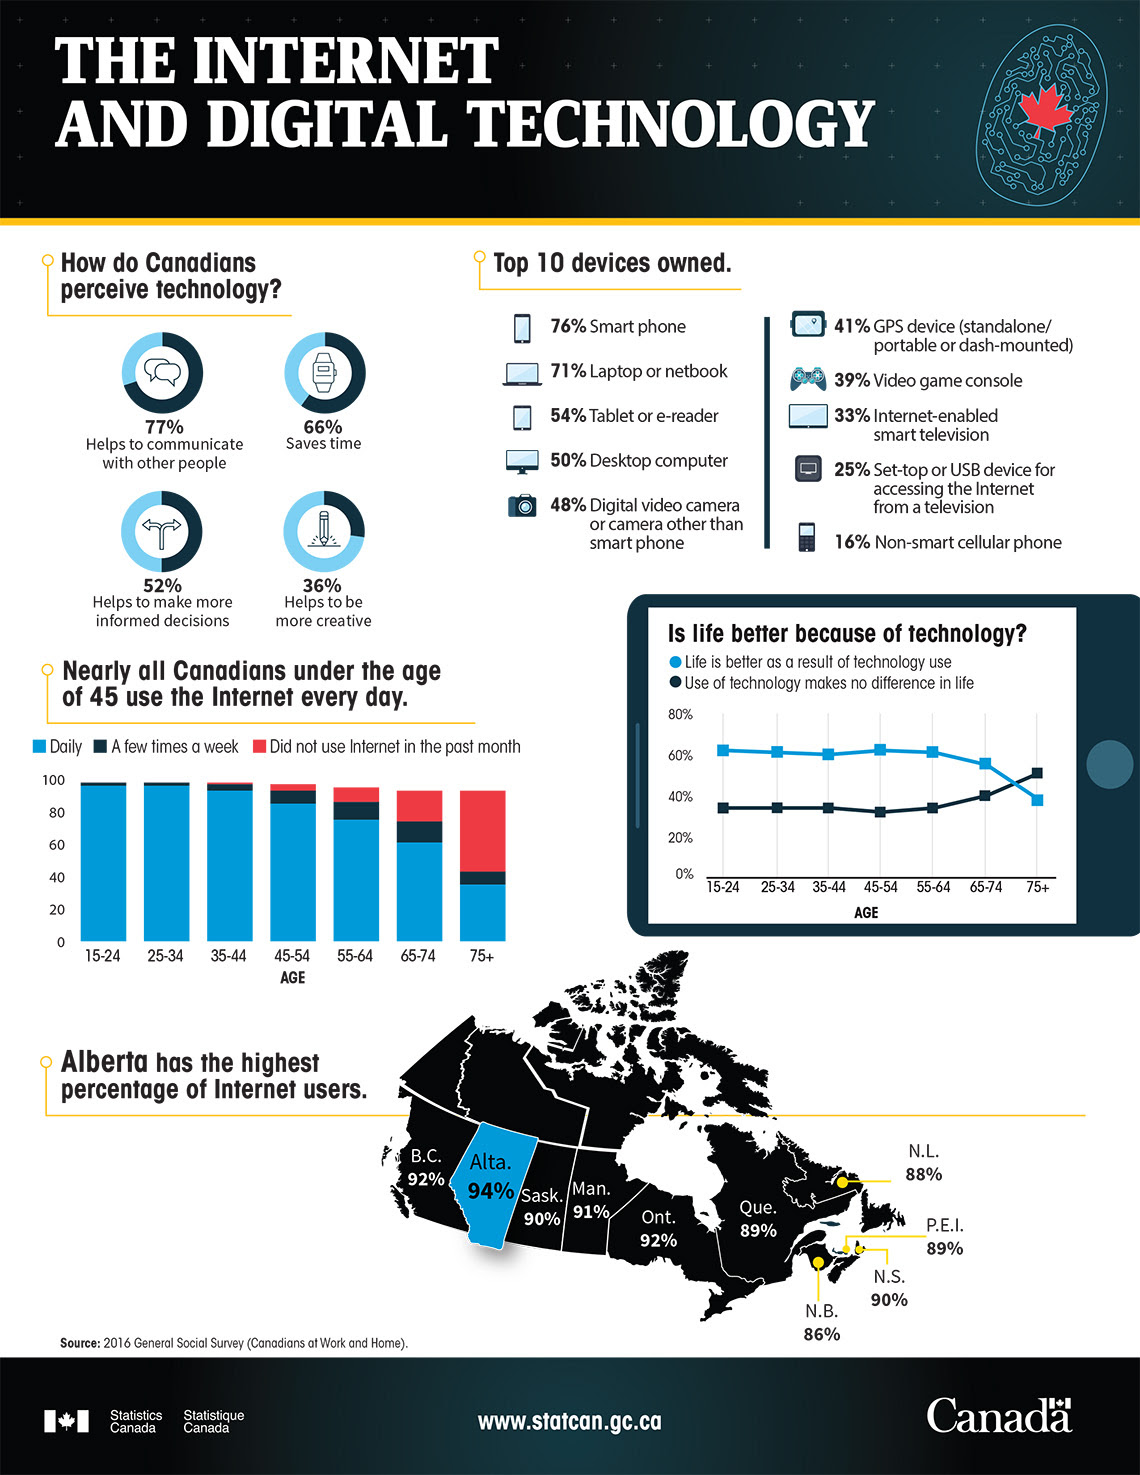 The Internet and Digital Technology, Statistics Canada, 2017